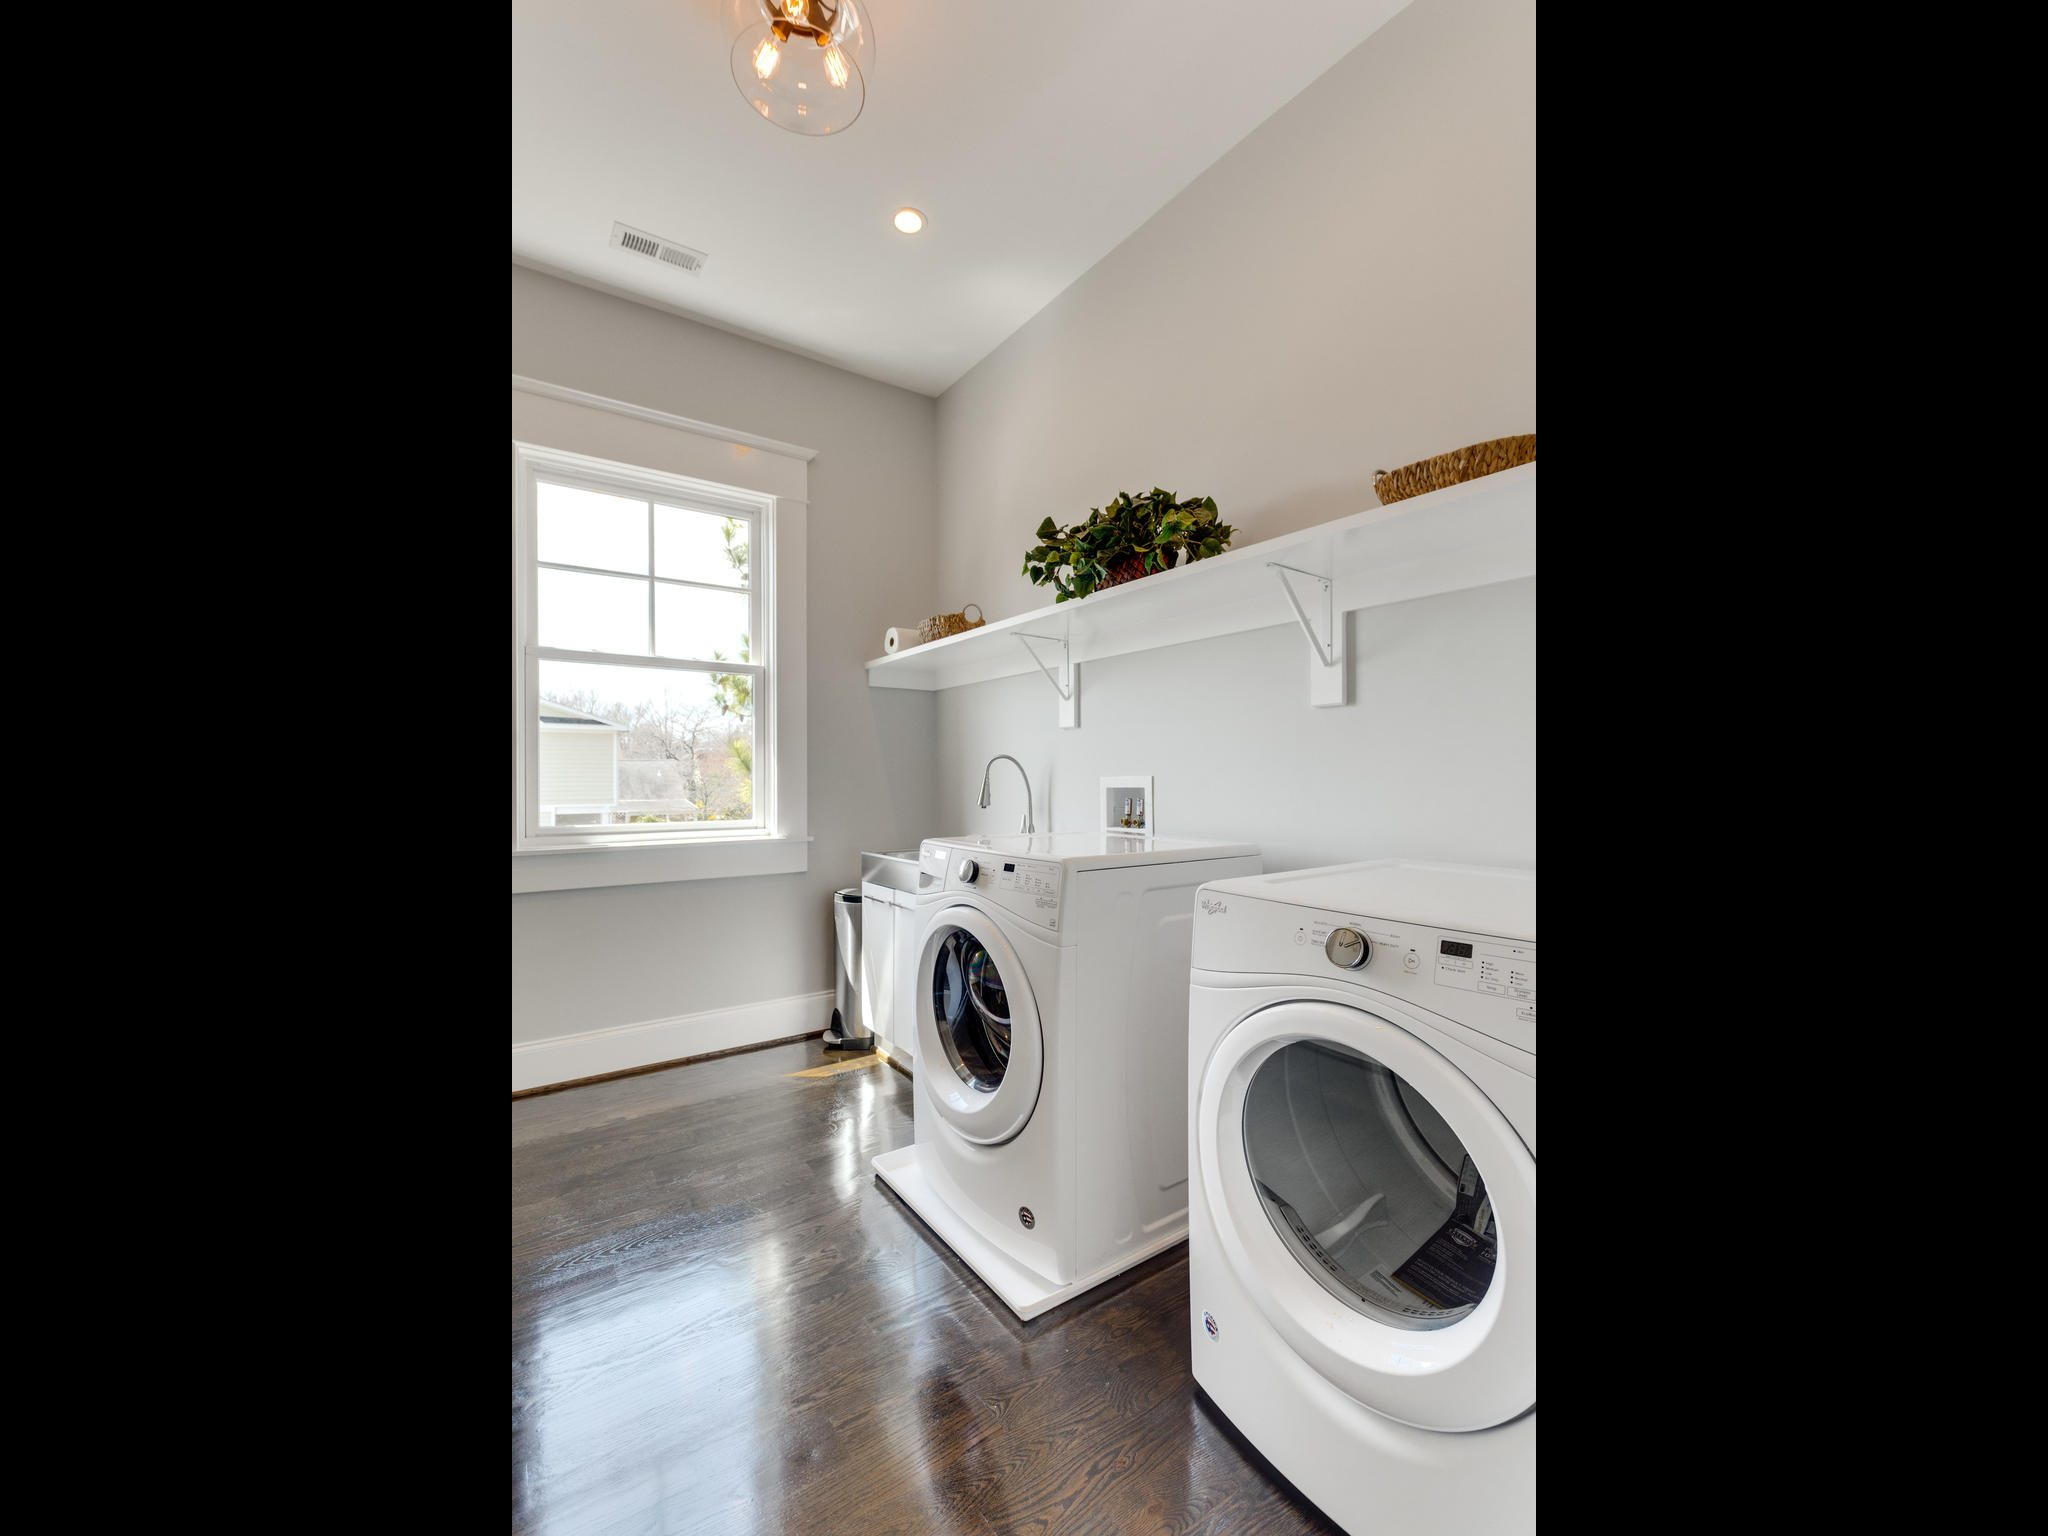 Upstairs laundry room. Custom Home by Custom Builder, North Arlington, VA 22207